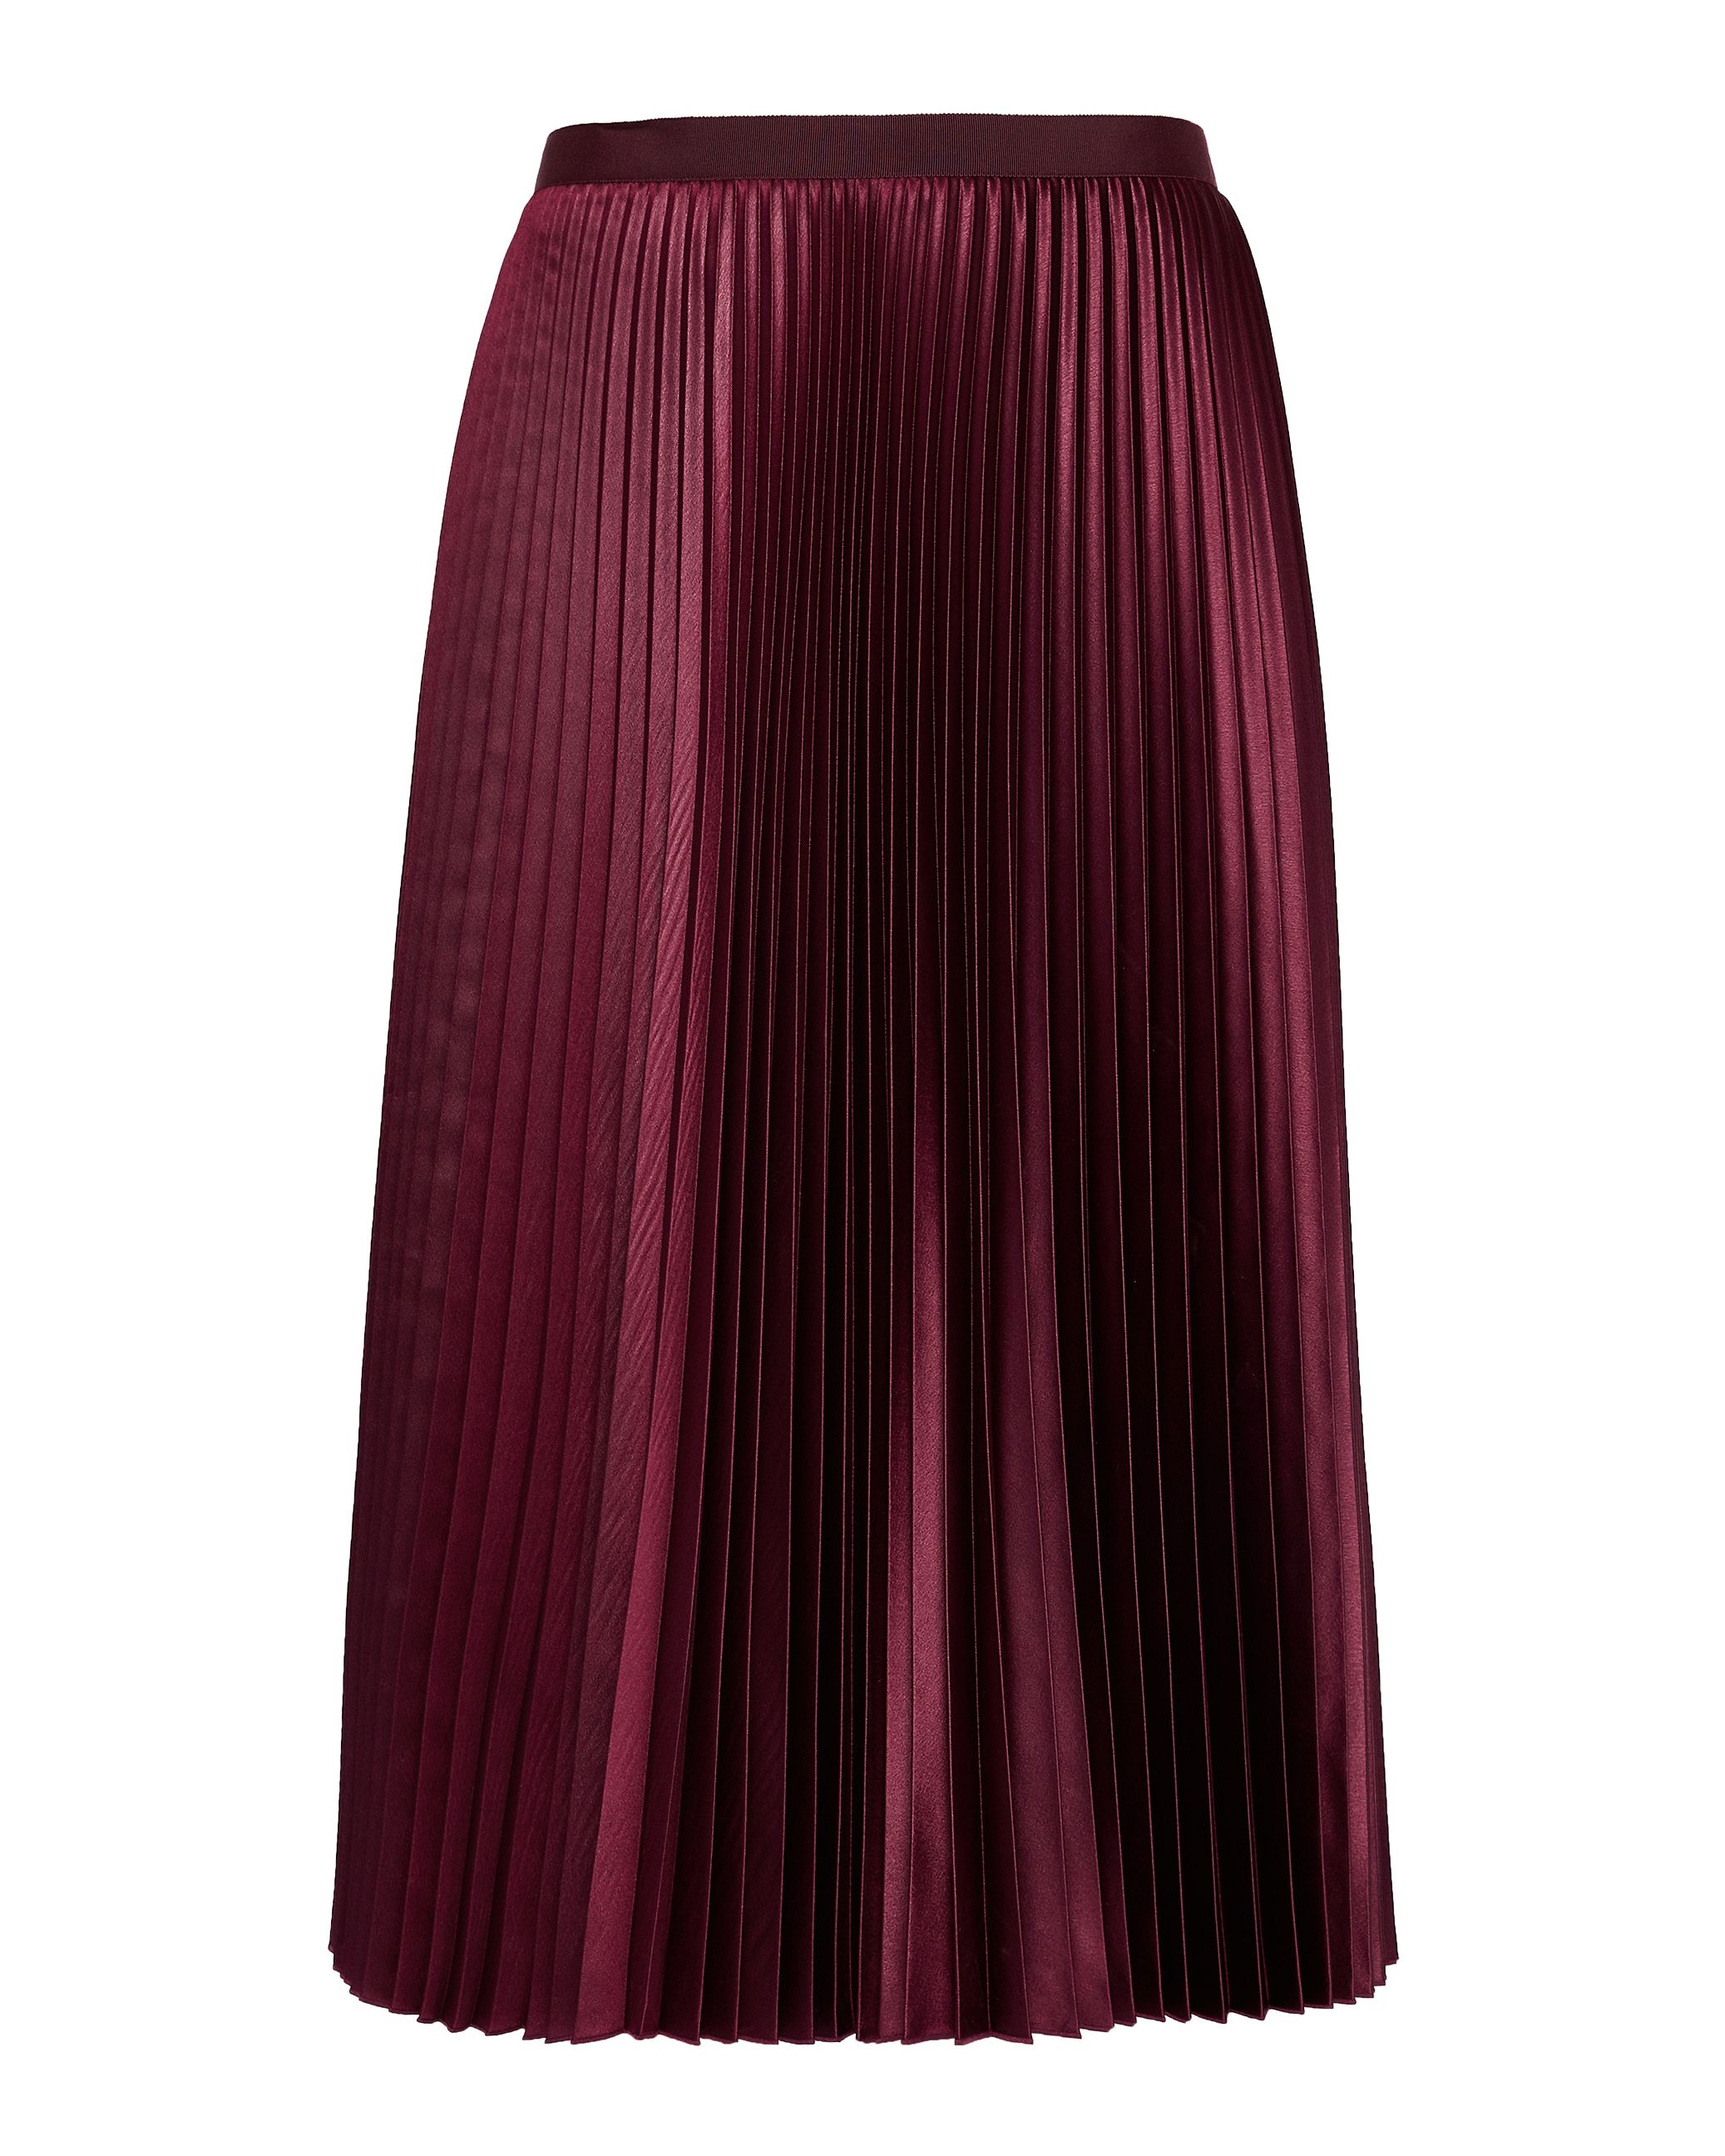 Ted Baker Pleated Midi Skirt, Maroon